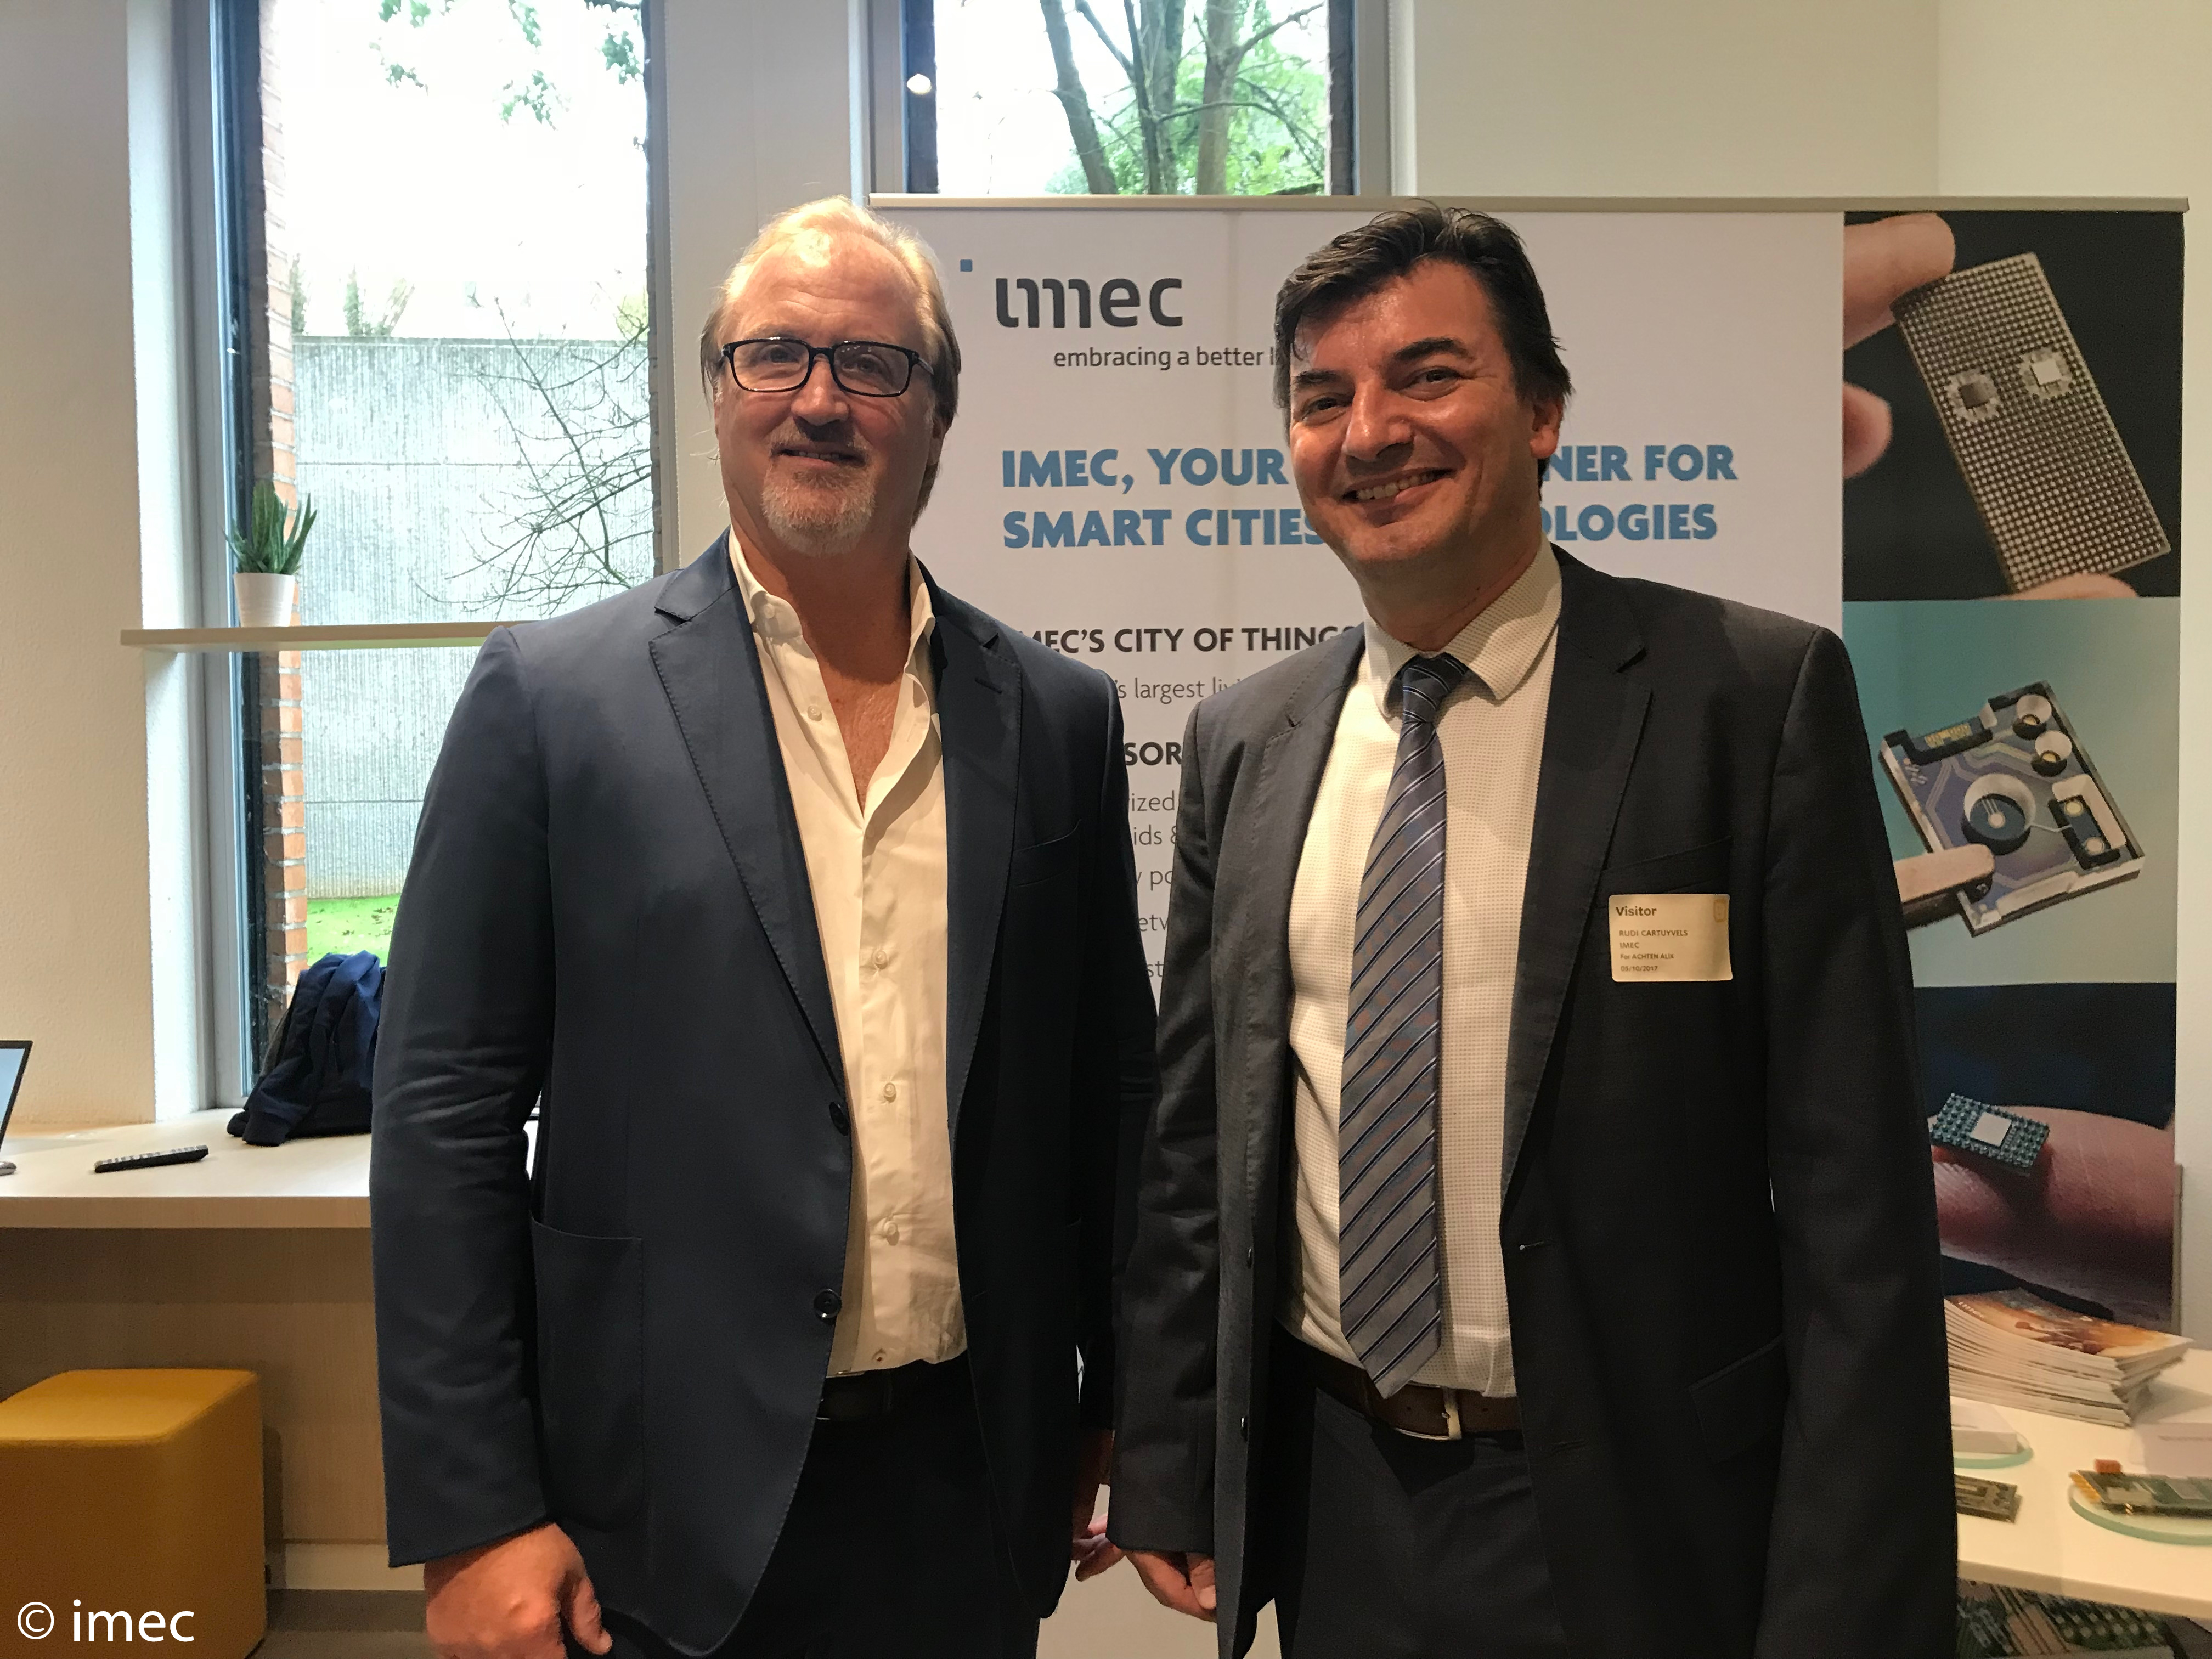 Telenet en imec gaan samenwerken rond Internet of Things en Smart Cities